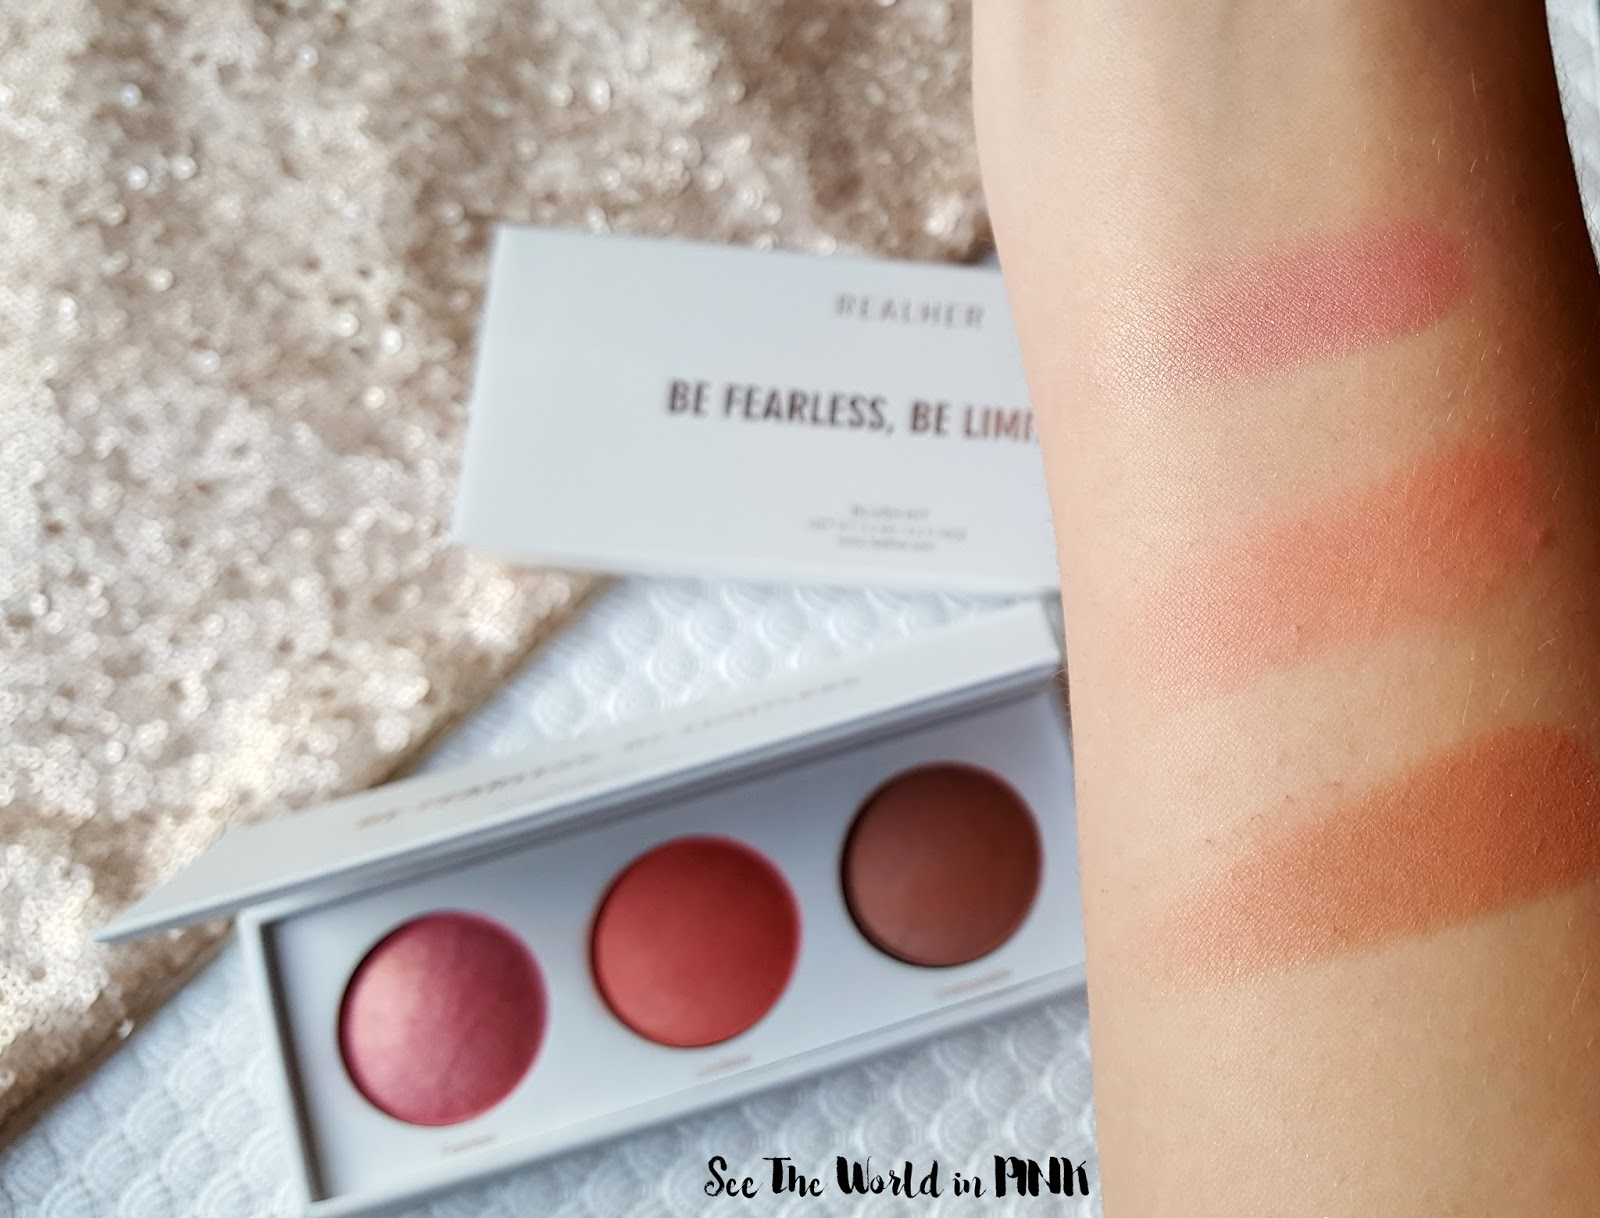 December 2017 Boxycharm - RealHer Be Fearless Blush Kit